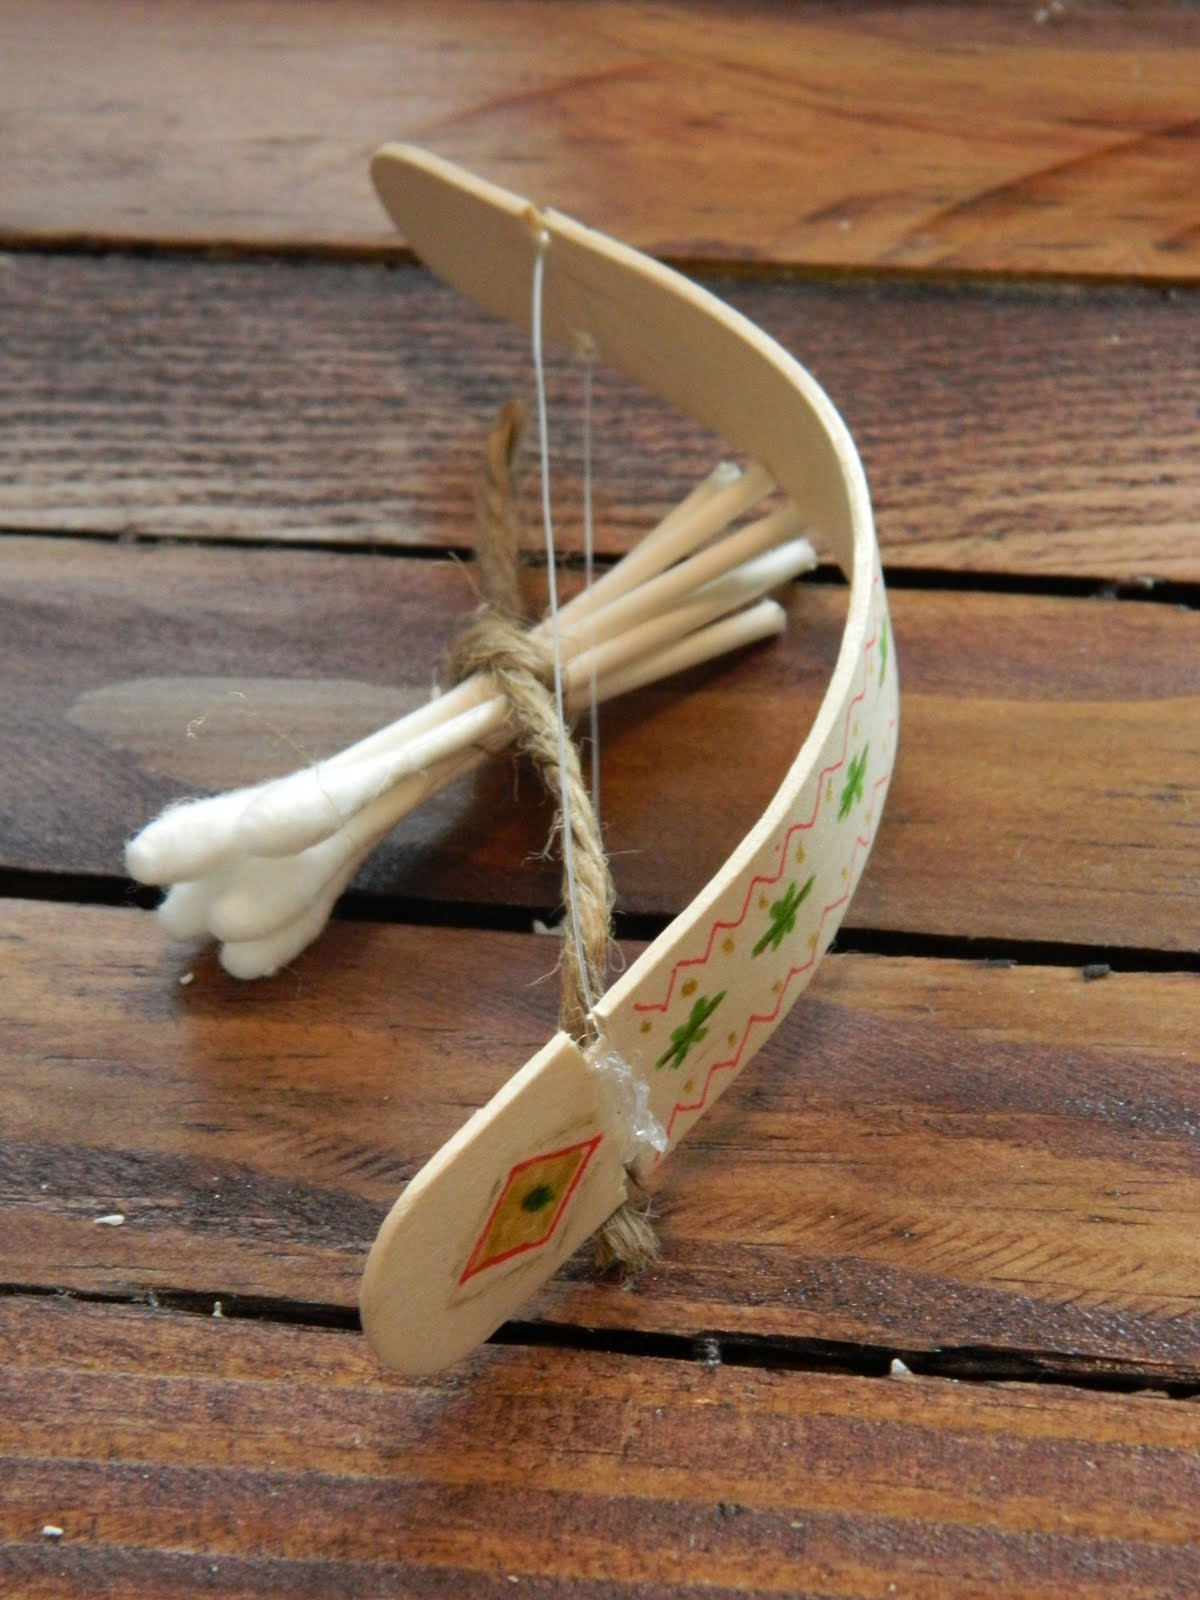 I Like To Draw Some Native American Designs On The Bow Tie Up Arrows With Twine Pop Whole Thing Into A Cute Little Bag Sewed And